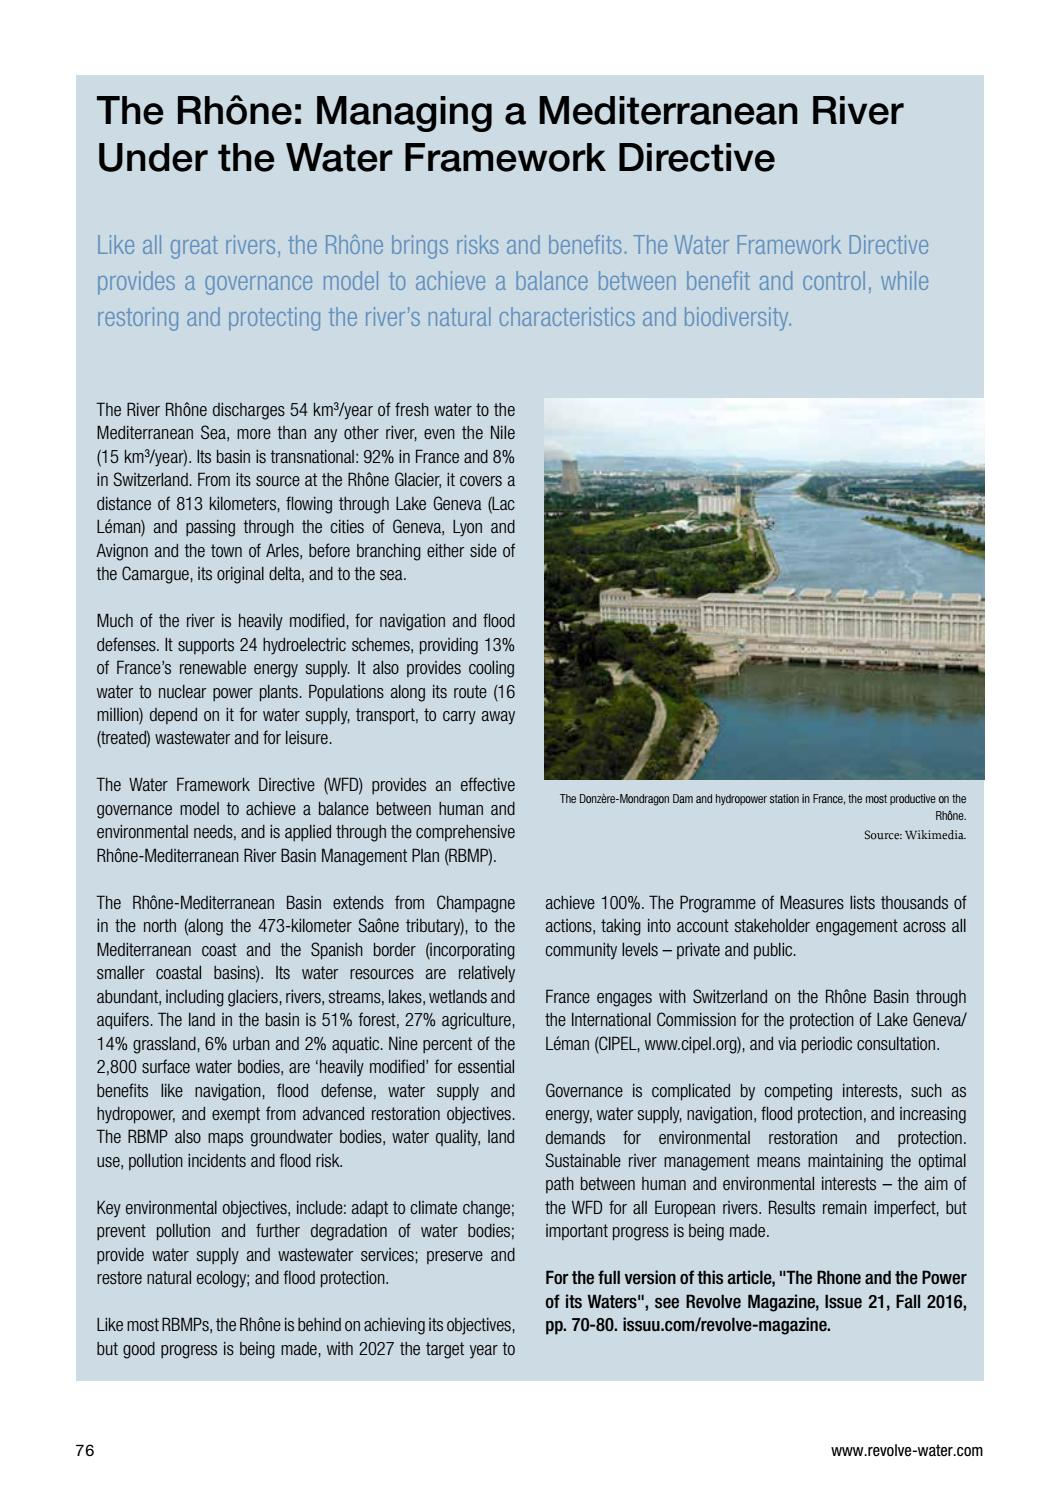 Water Report 2016 _ English Version by REVOLVE - issuu